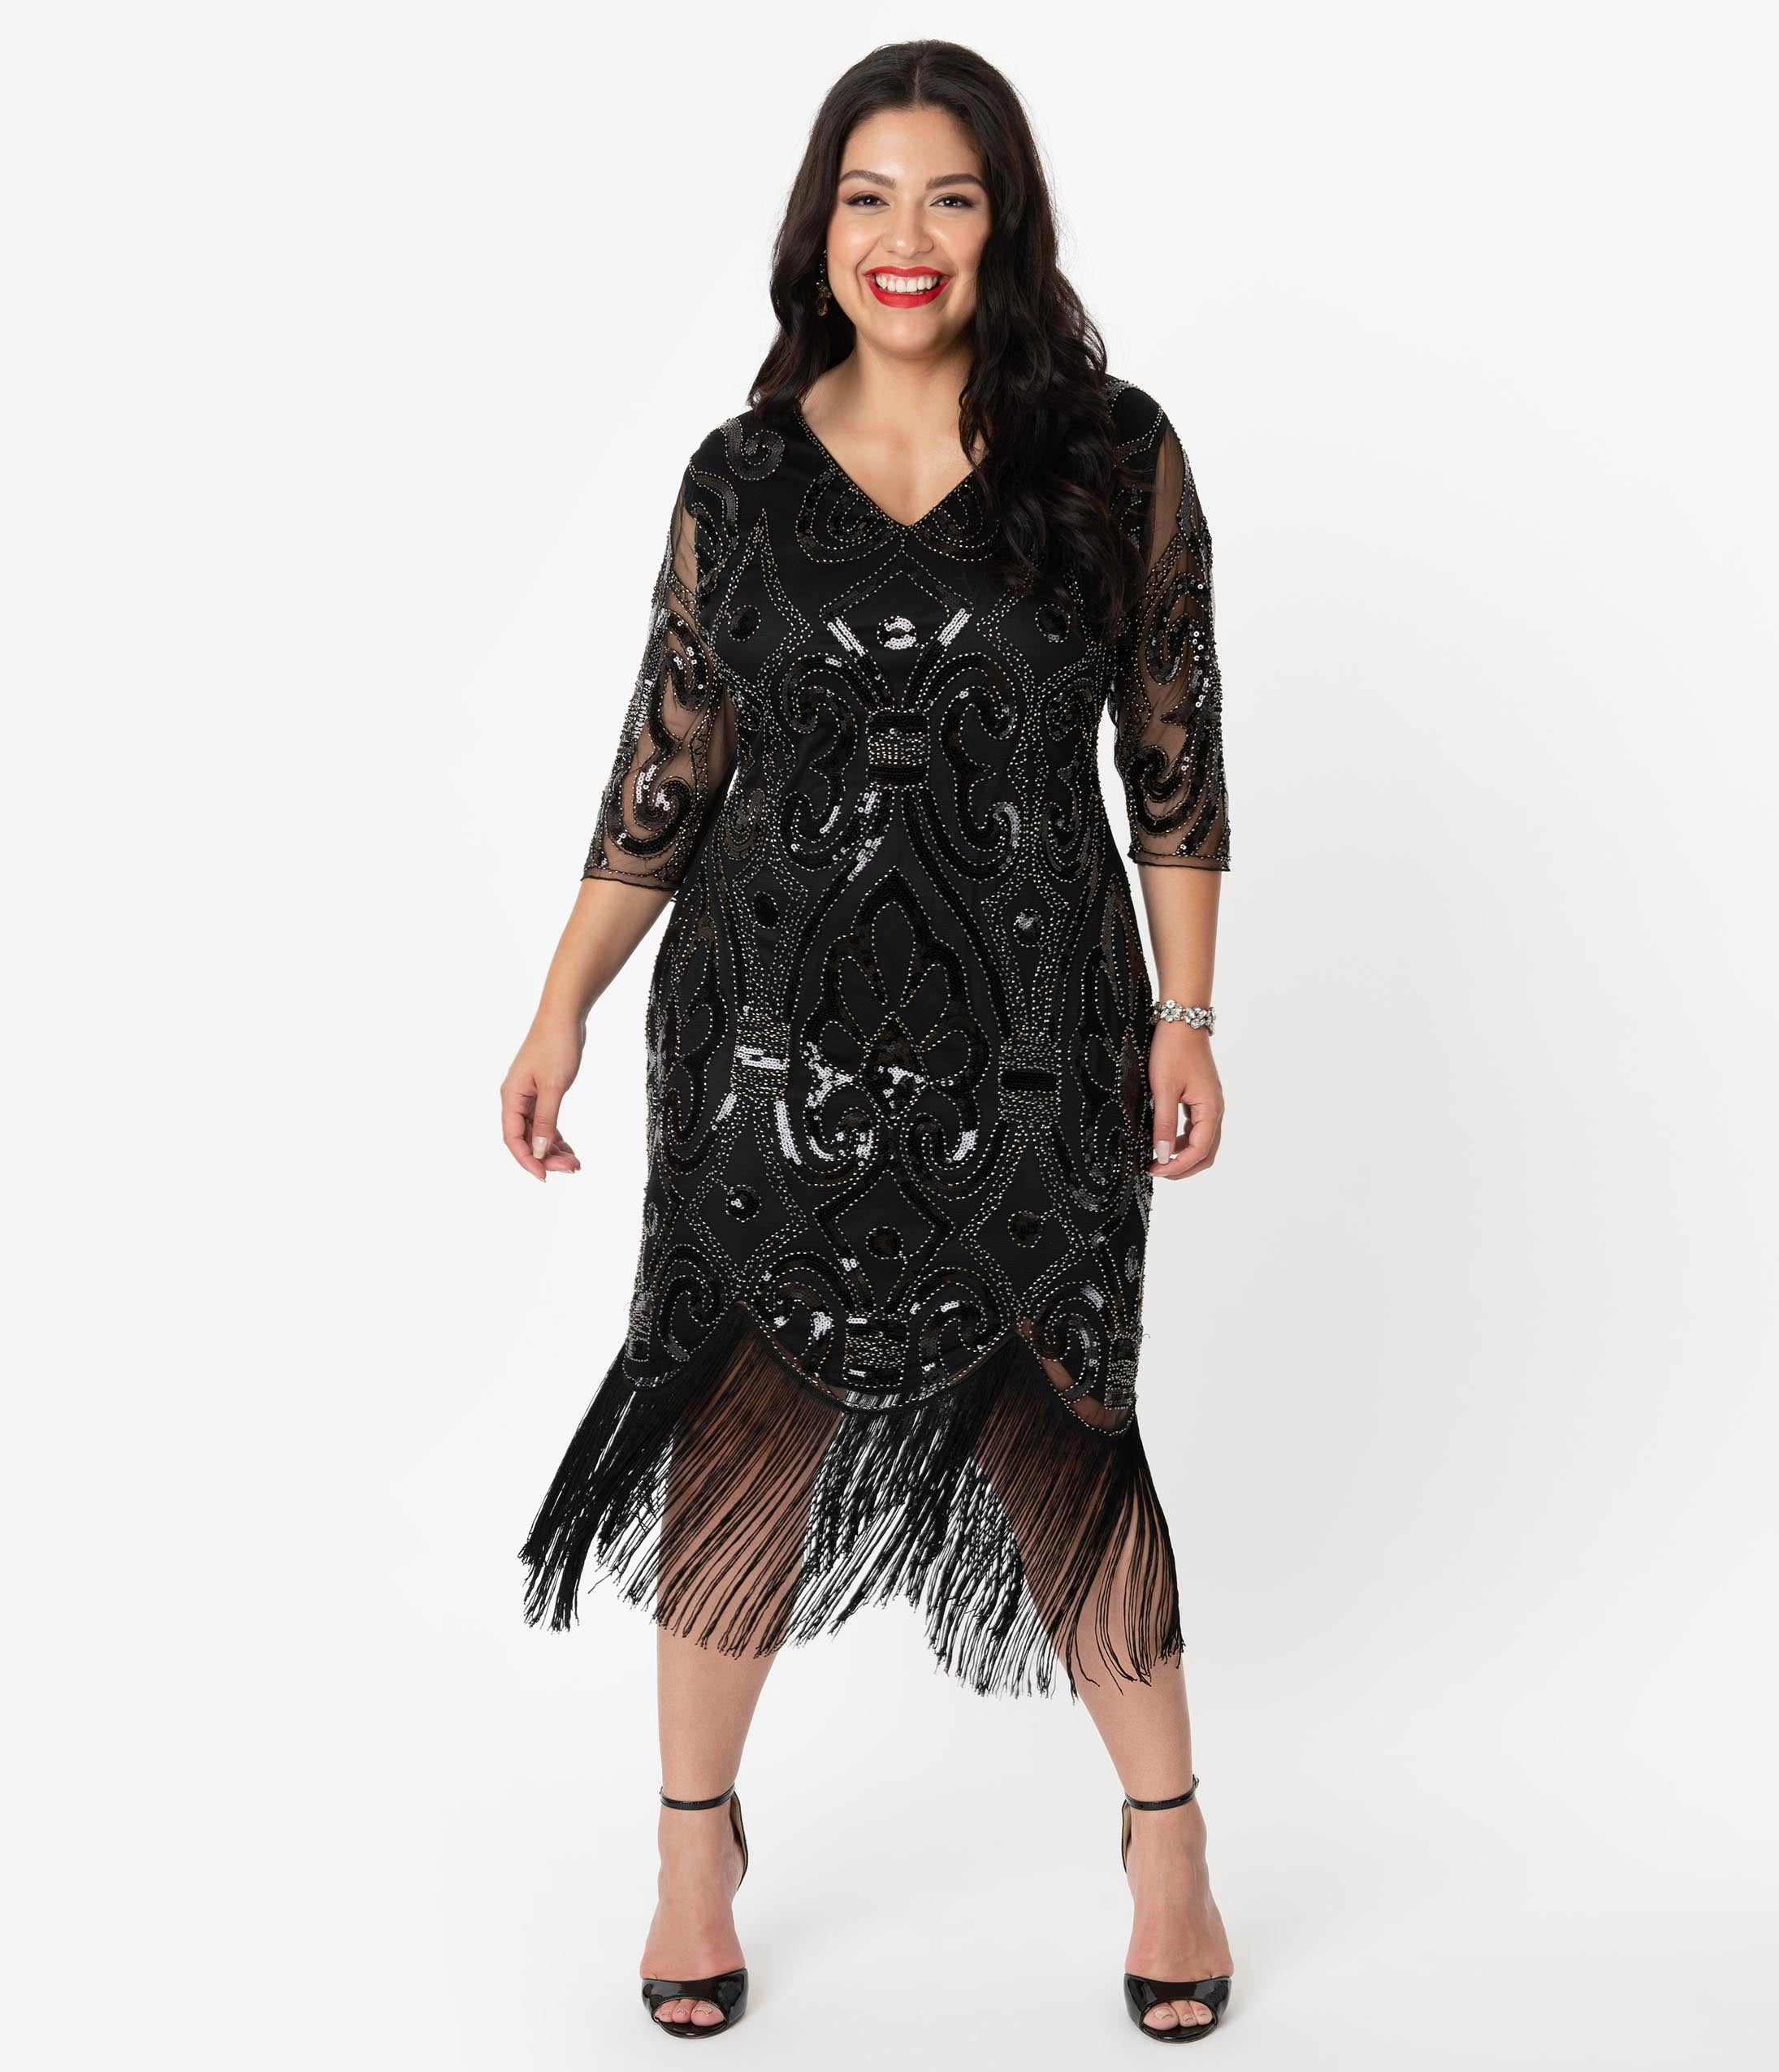 1920s Evening Dresses & Formal Gowns Unique Vintage Plus Size 1920S Black Beaded Lynette Fringe Flapper Dress $98.00 AT vintagedancer.com